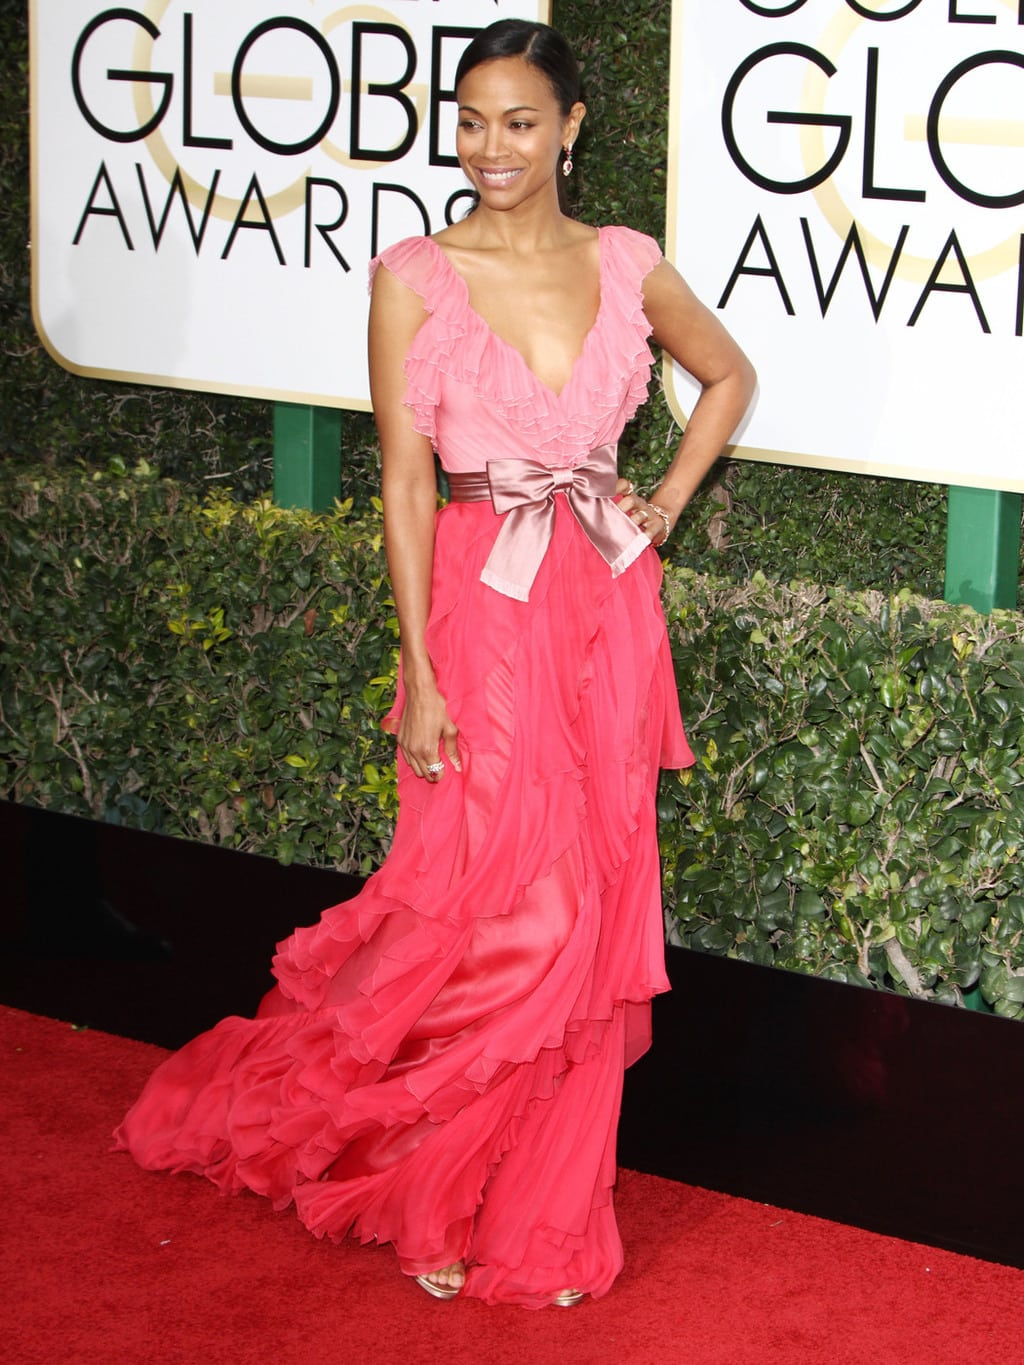 Zoe Saldana in a pink Gucci gown on the 2017 Golden Globes red carpet